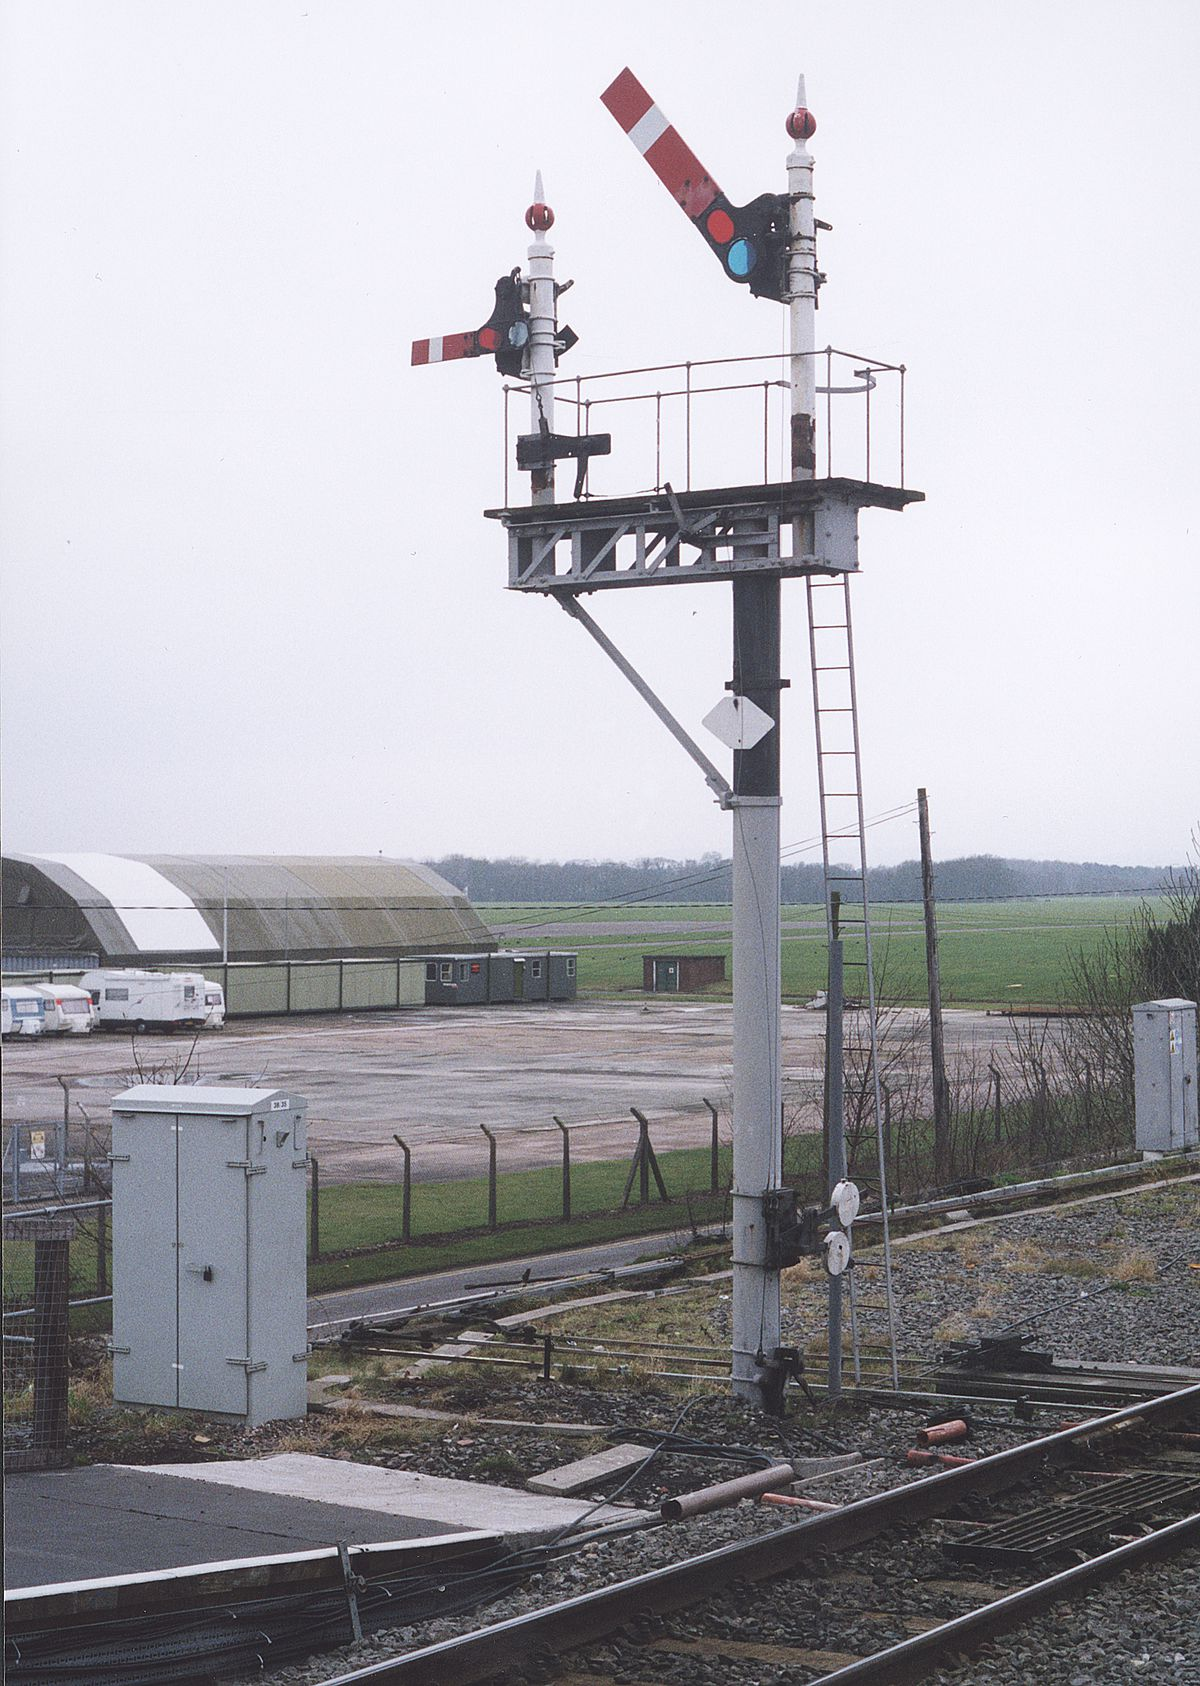 On the way out... semaphore signals at Cosford station in 2006 shortly before being replaced.